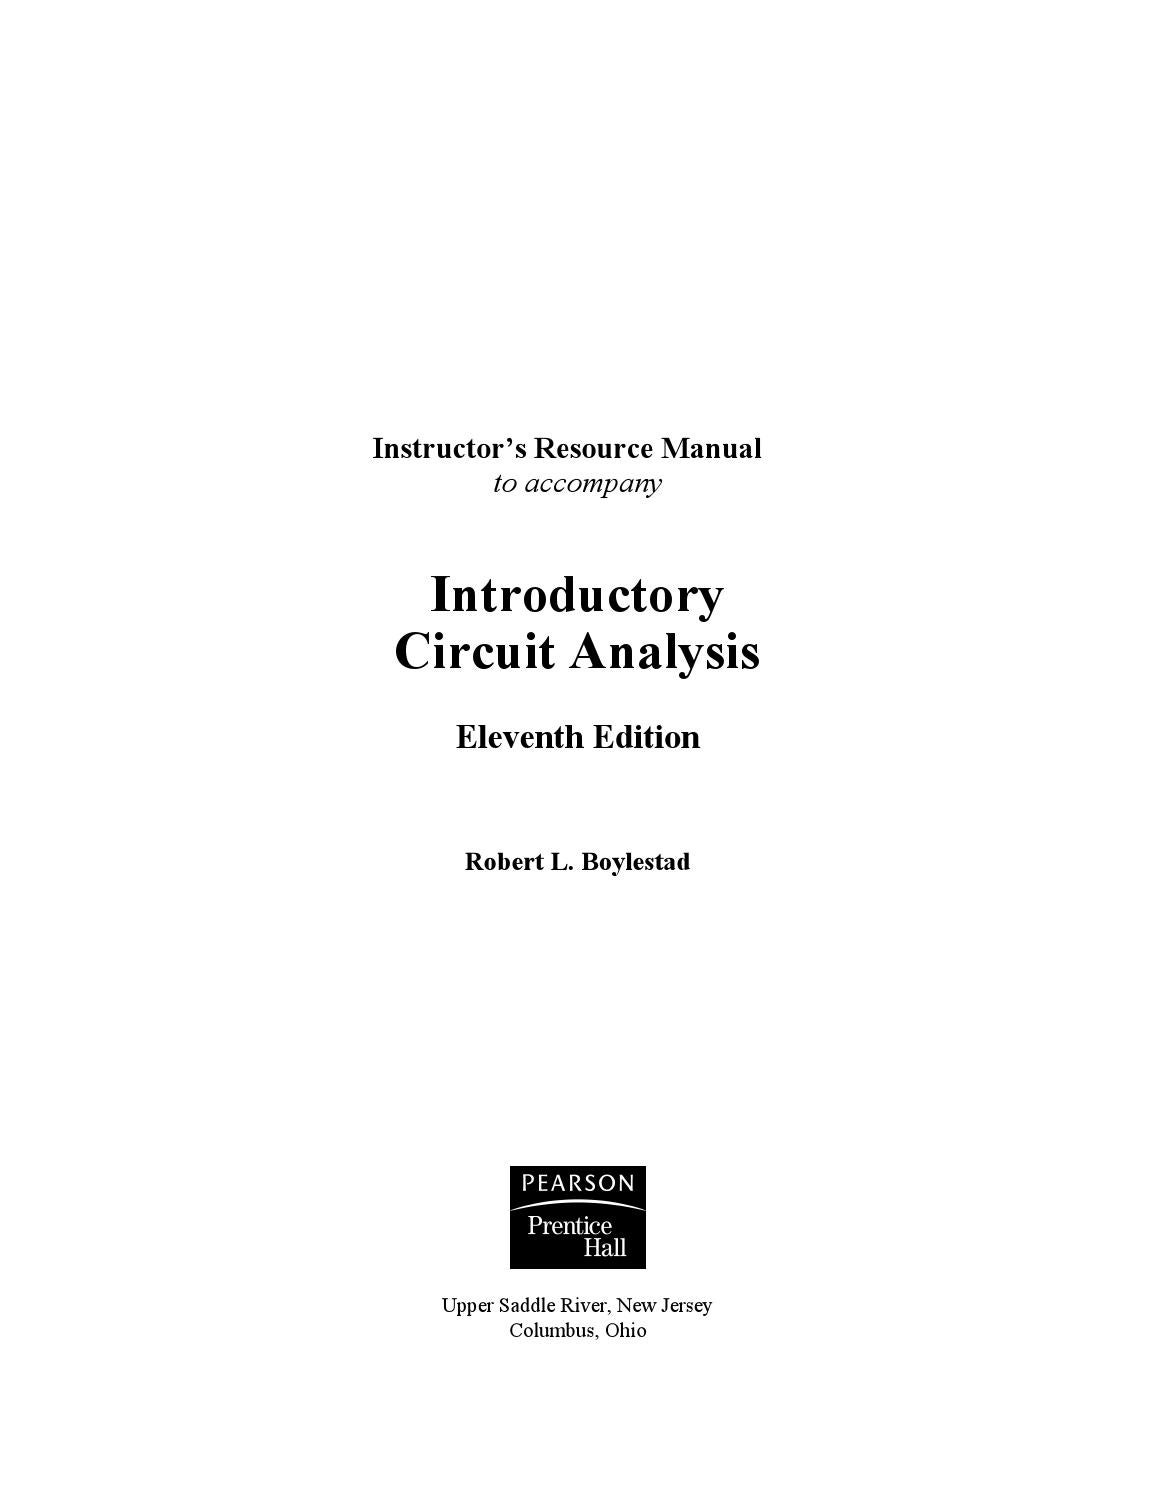 Introductory circuit analysis(solution 11th edition) by mamado bonnah2017 -  issuu